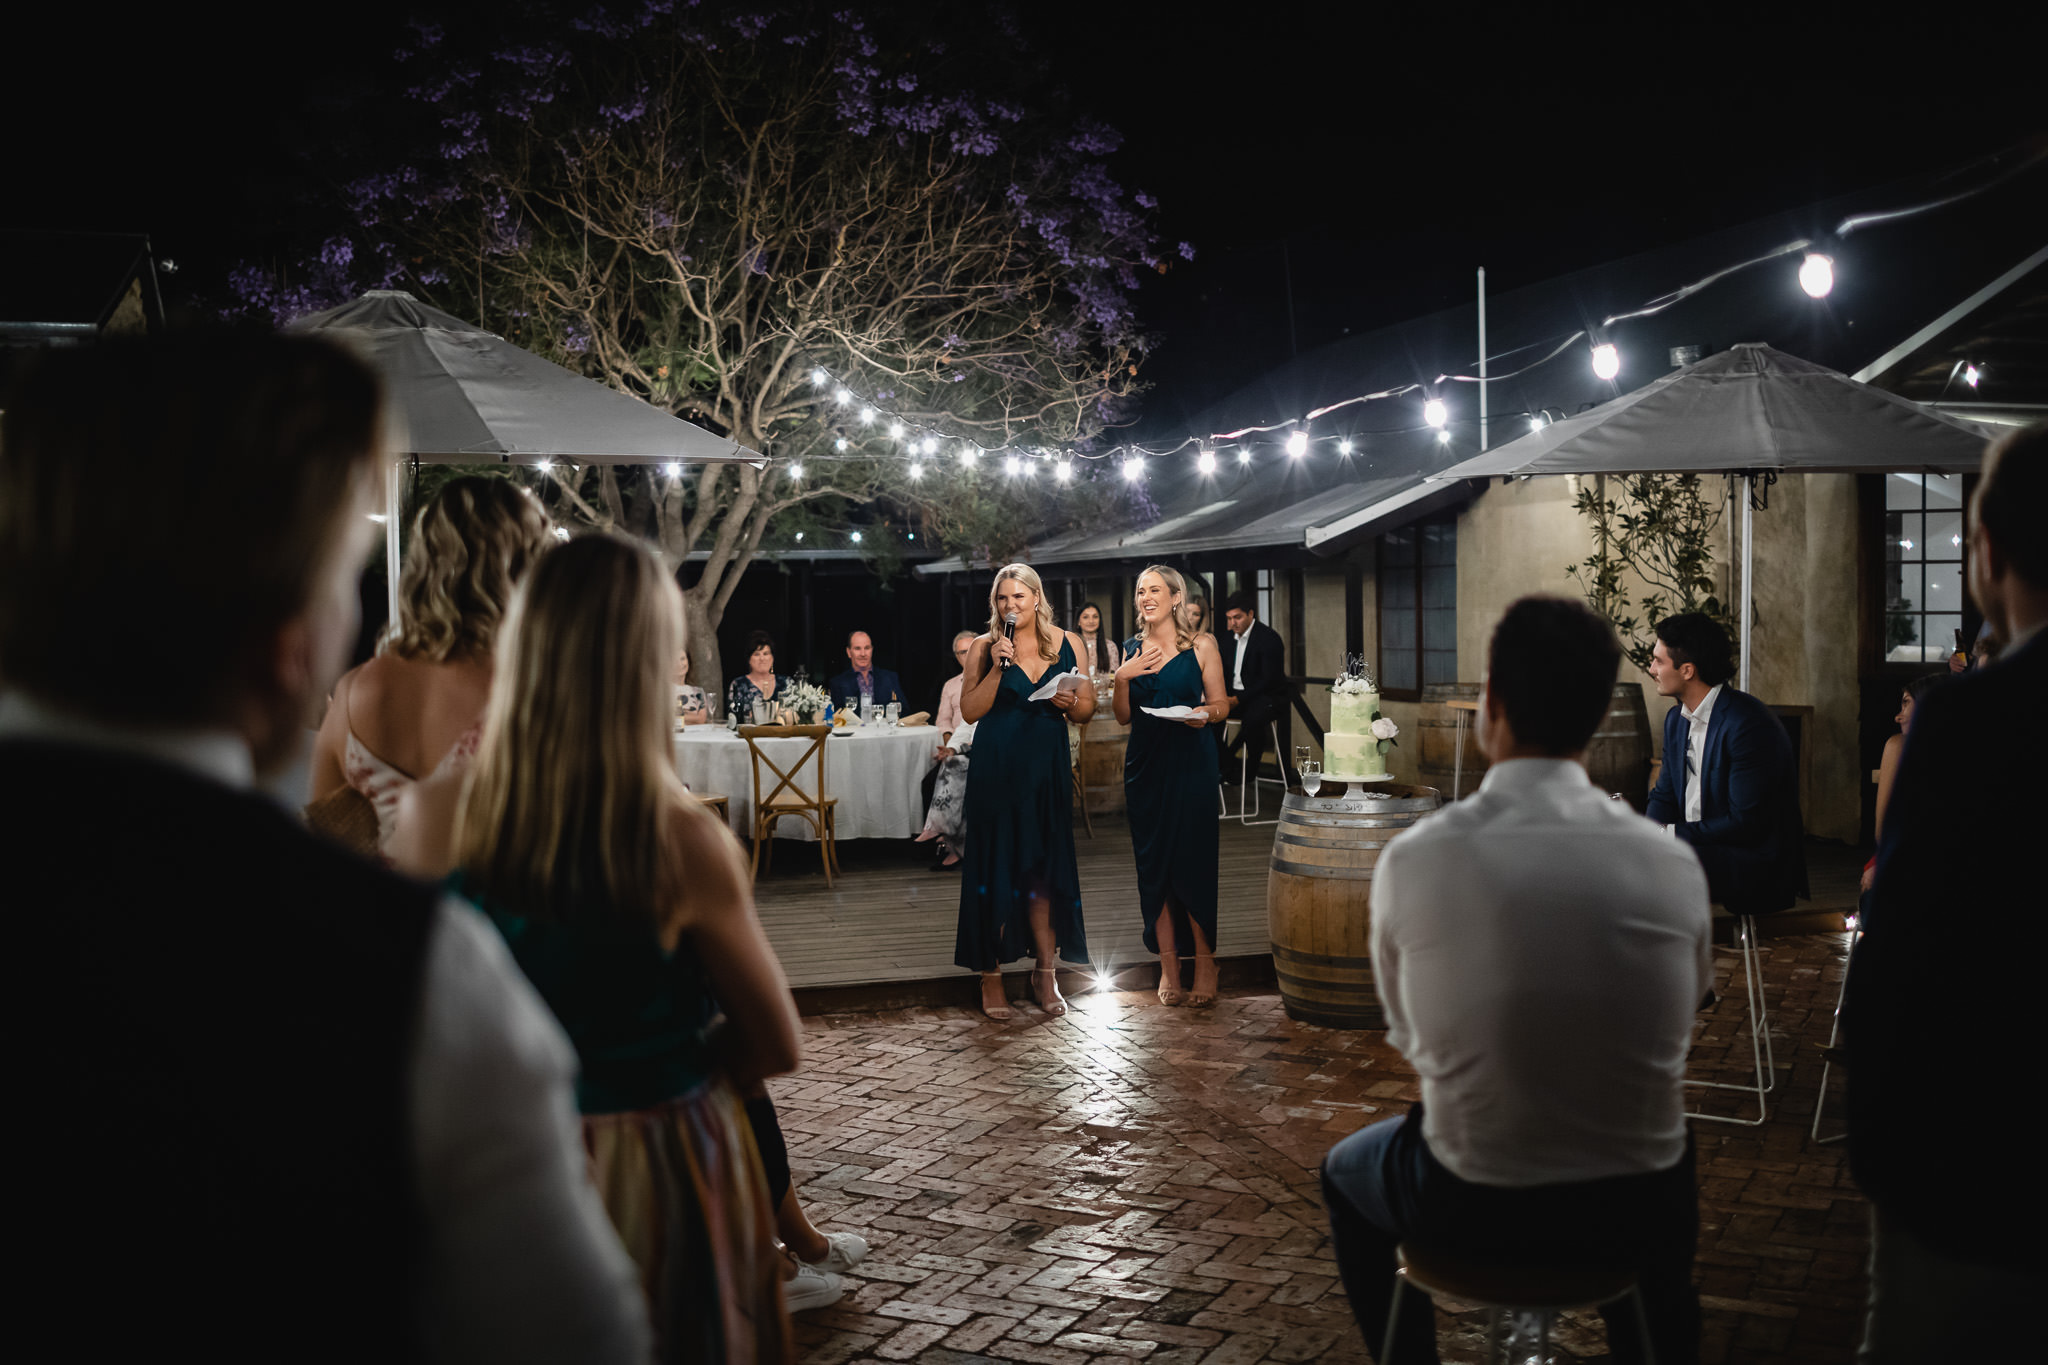 bridesmaids making speech under festoon lights at outdoor cocktail wedding reception